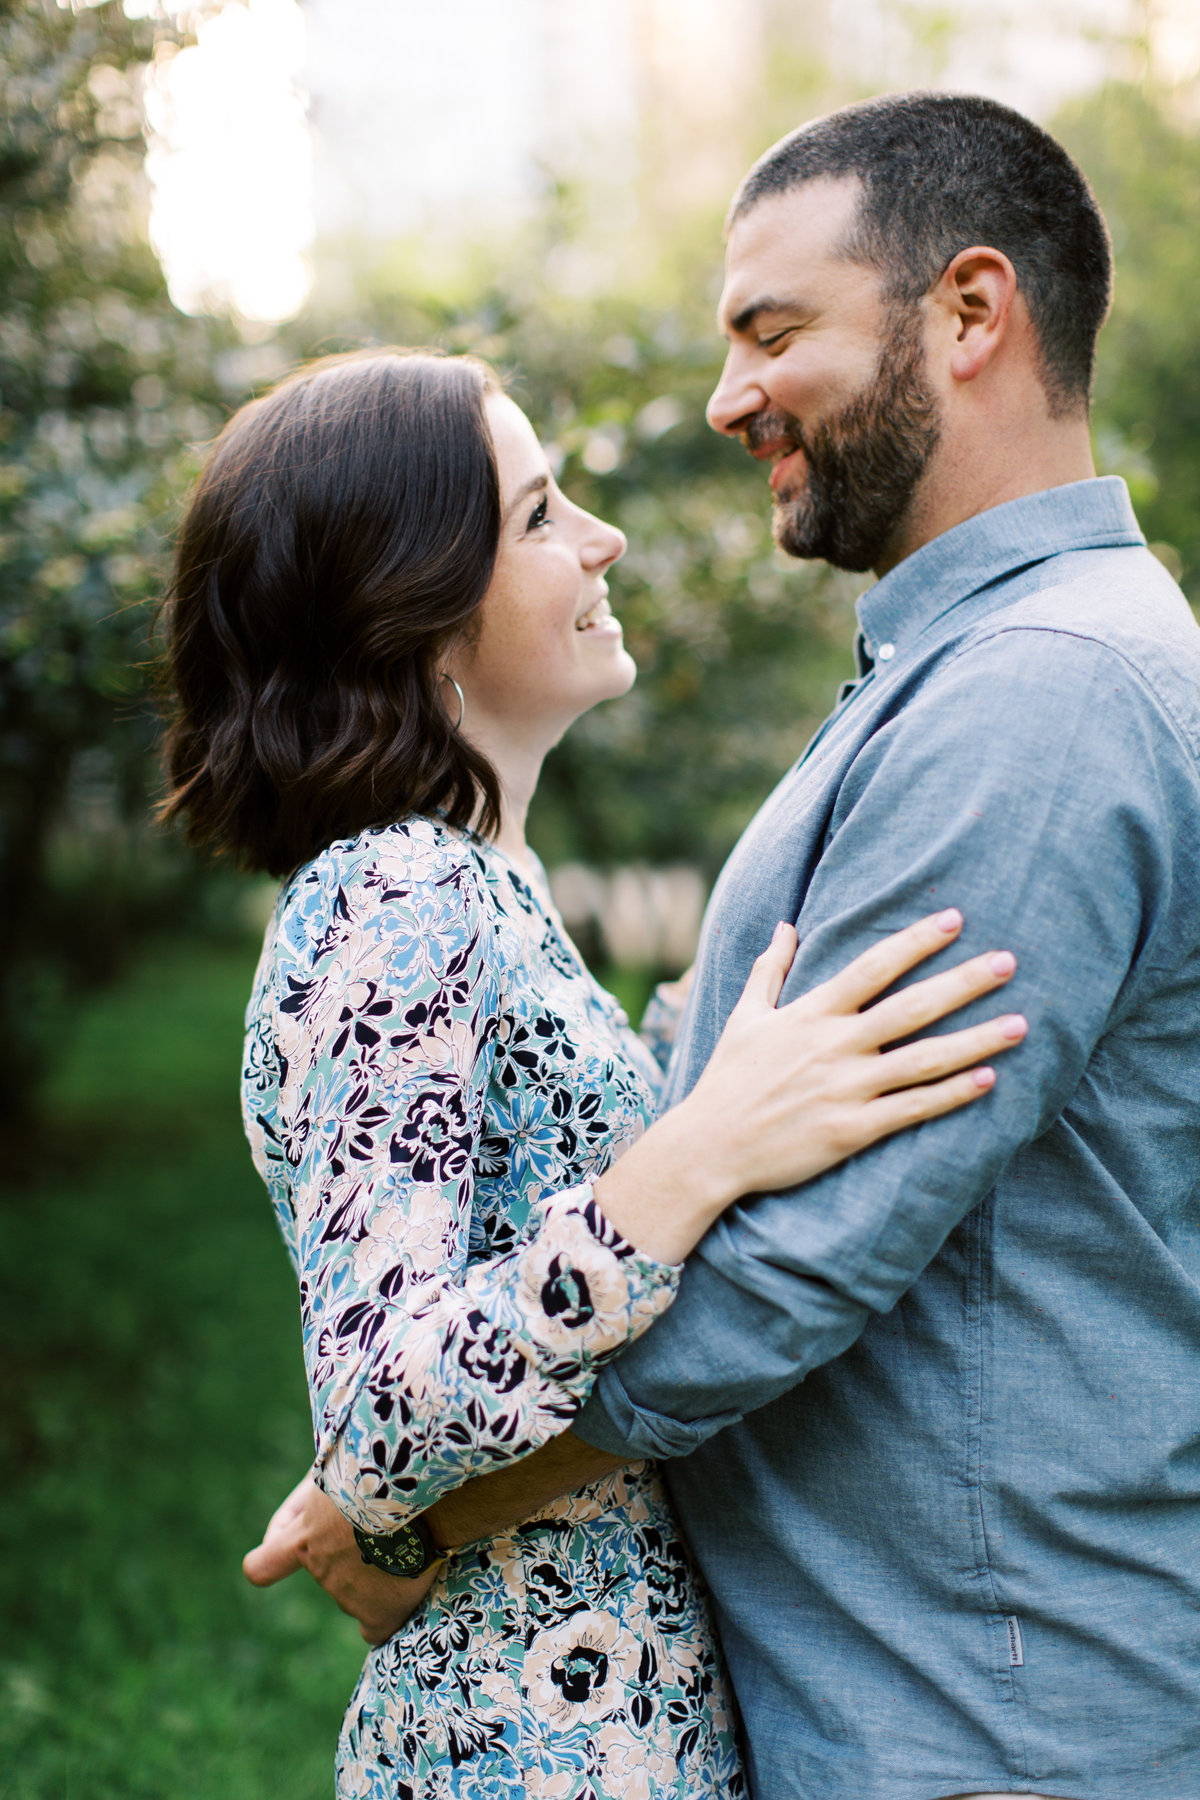 AllieDavid_Engagement_September042019_87